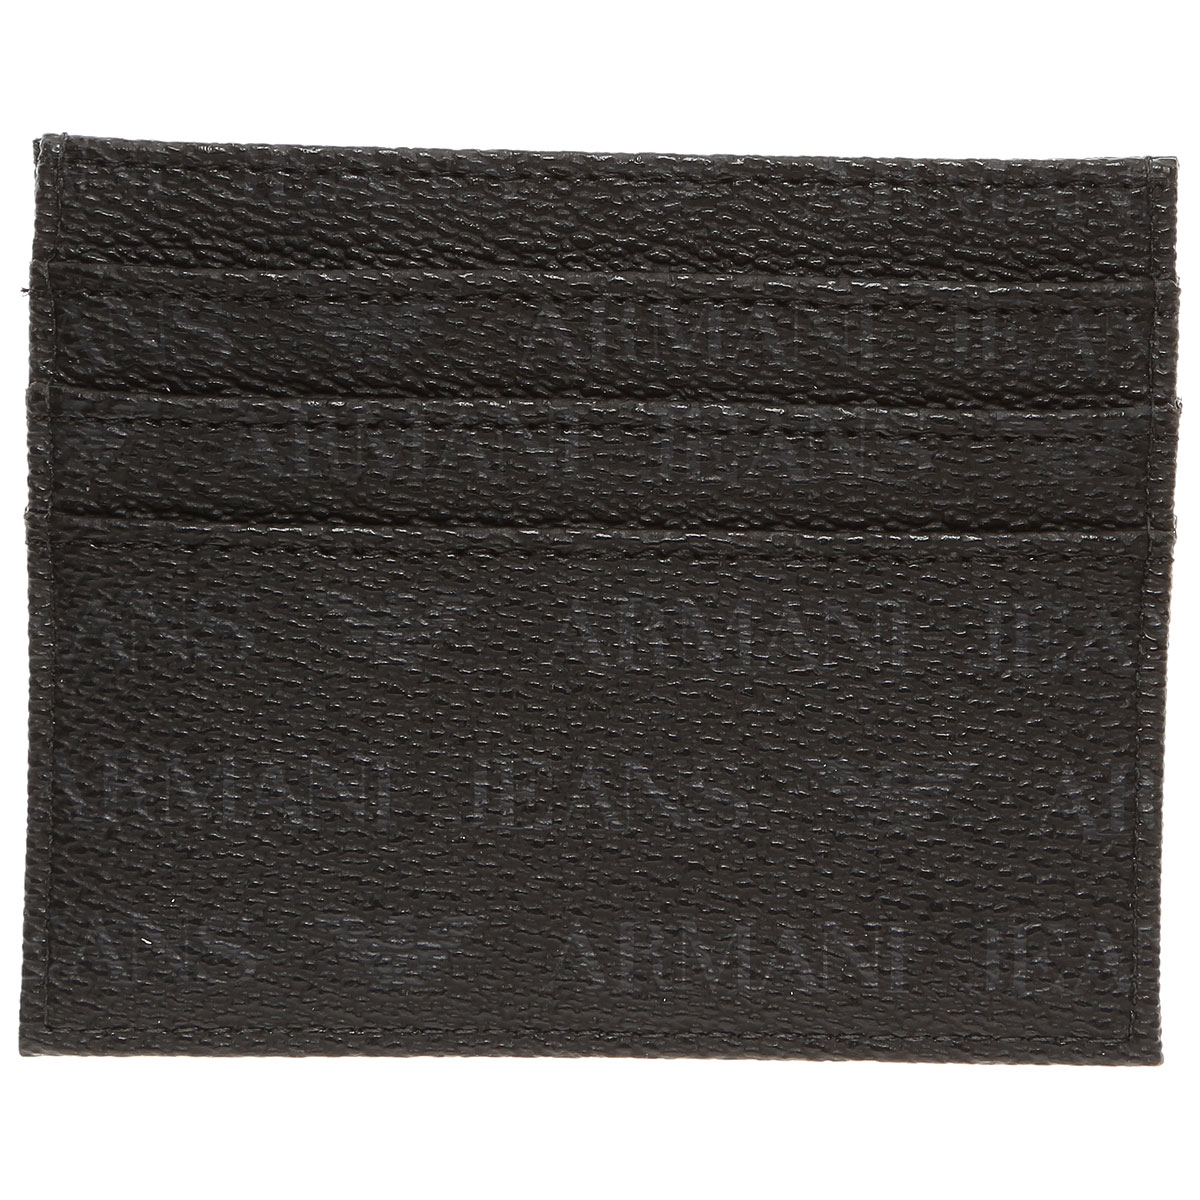 Image of Armani Jeans Card Holder for Men On Sale, Black, Pvo, 2017